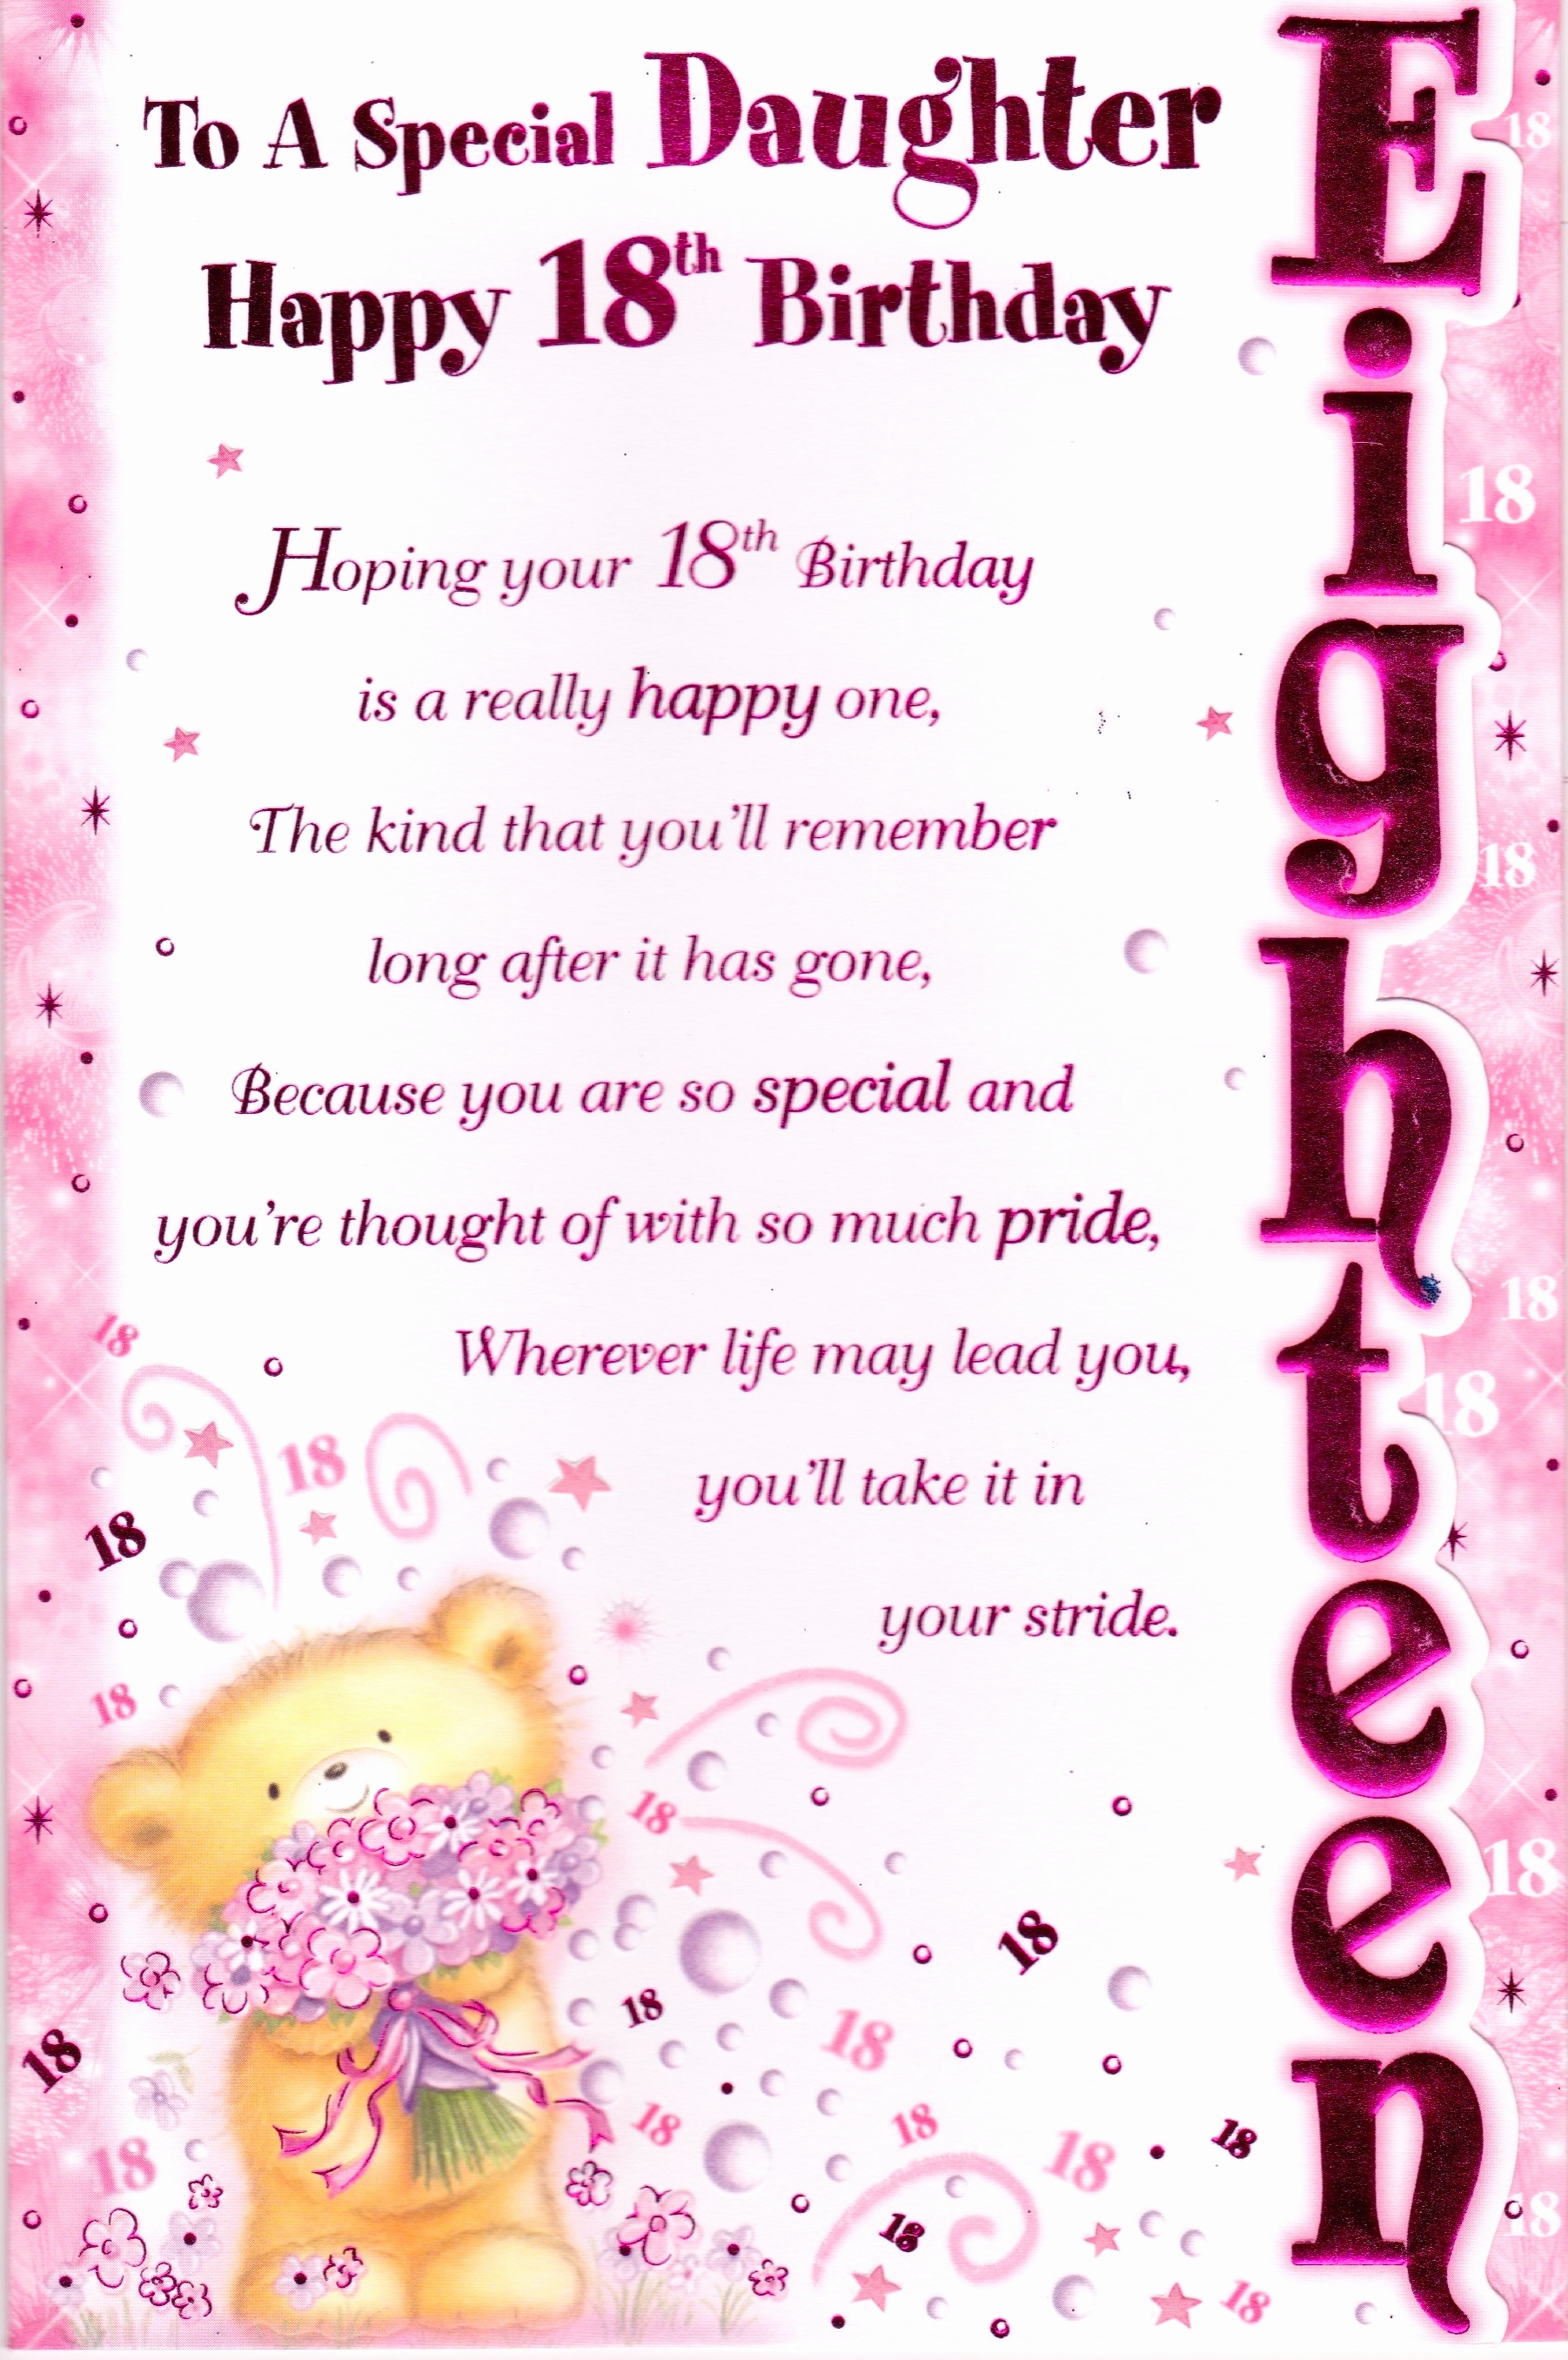 21st birthday card messages for daughter ; happy-birthday-daughter-cards-elegant-happy-birthday-card-for-my-daughter-of-happy-birthday-daughter-cards